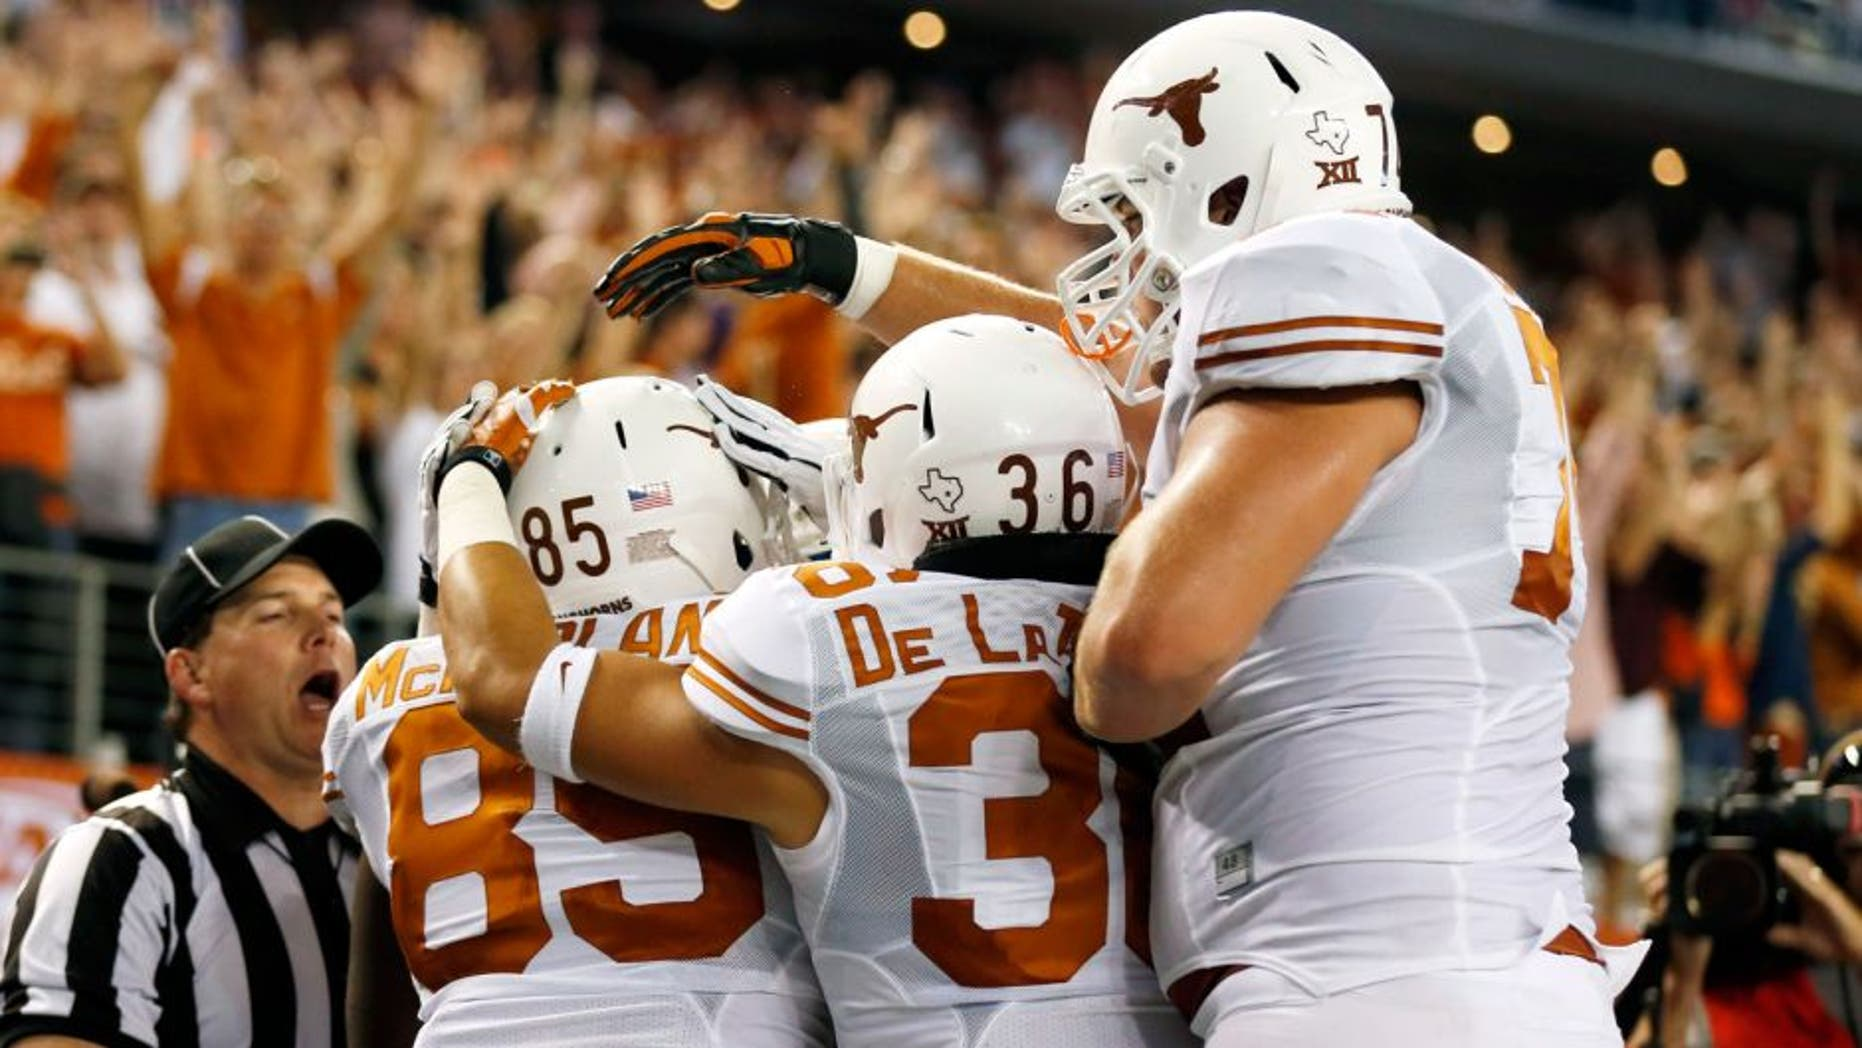 Sep 13, 2014; Arlington, TX, USA; Texas Longhorns tight end M.J. McFarland (85) celebrates making a touchdown with fullback Alex De La Torre (36) against the UCLA Bruins during the second quarter at AT&T Stadium. Mandatory Credit: Matthew Emmons-USA TODAY Sports